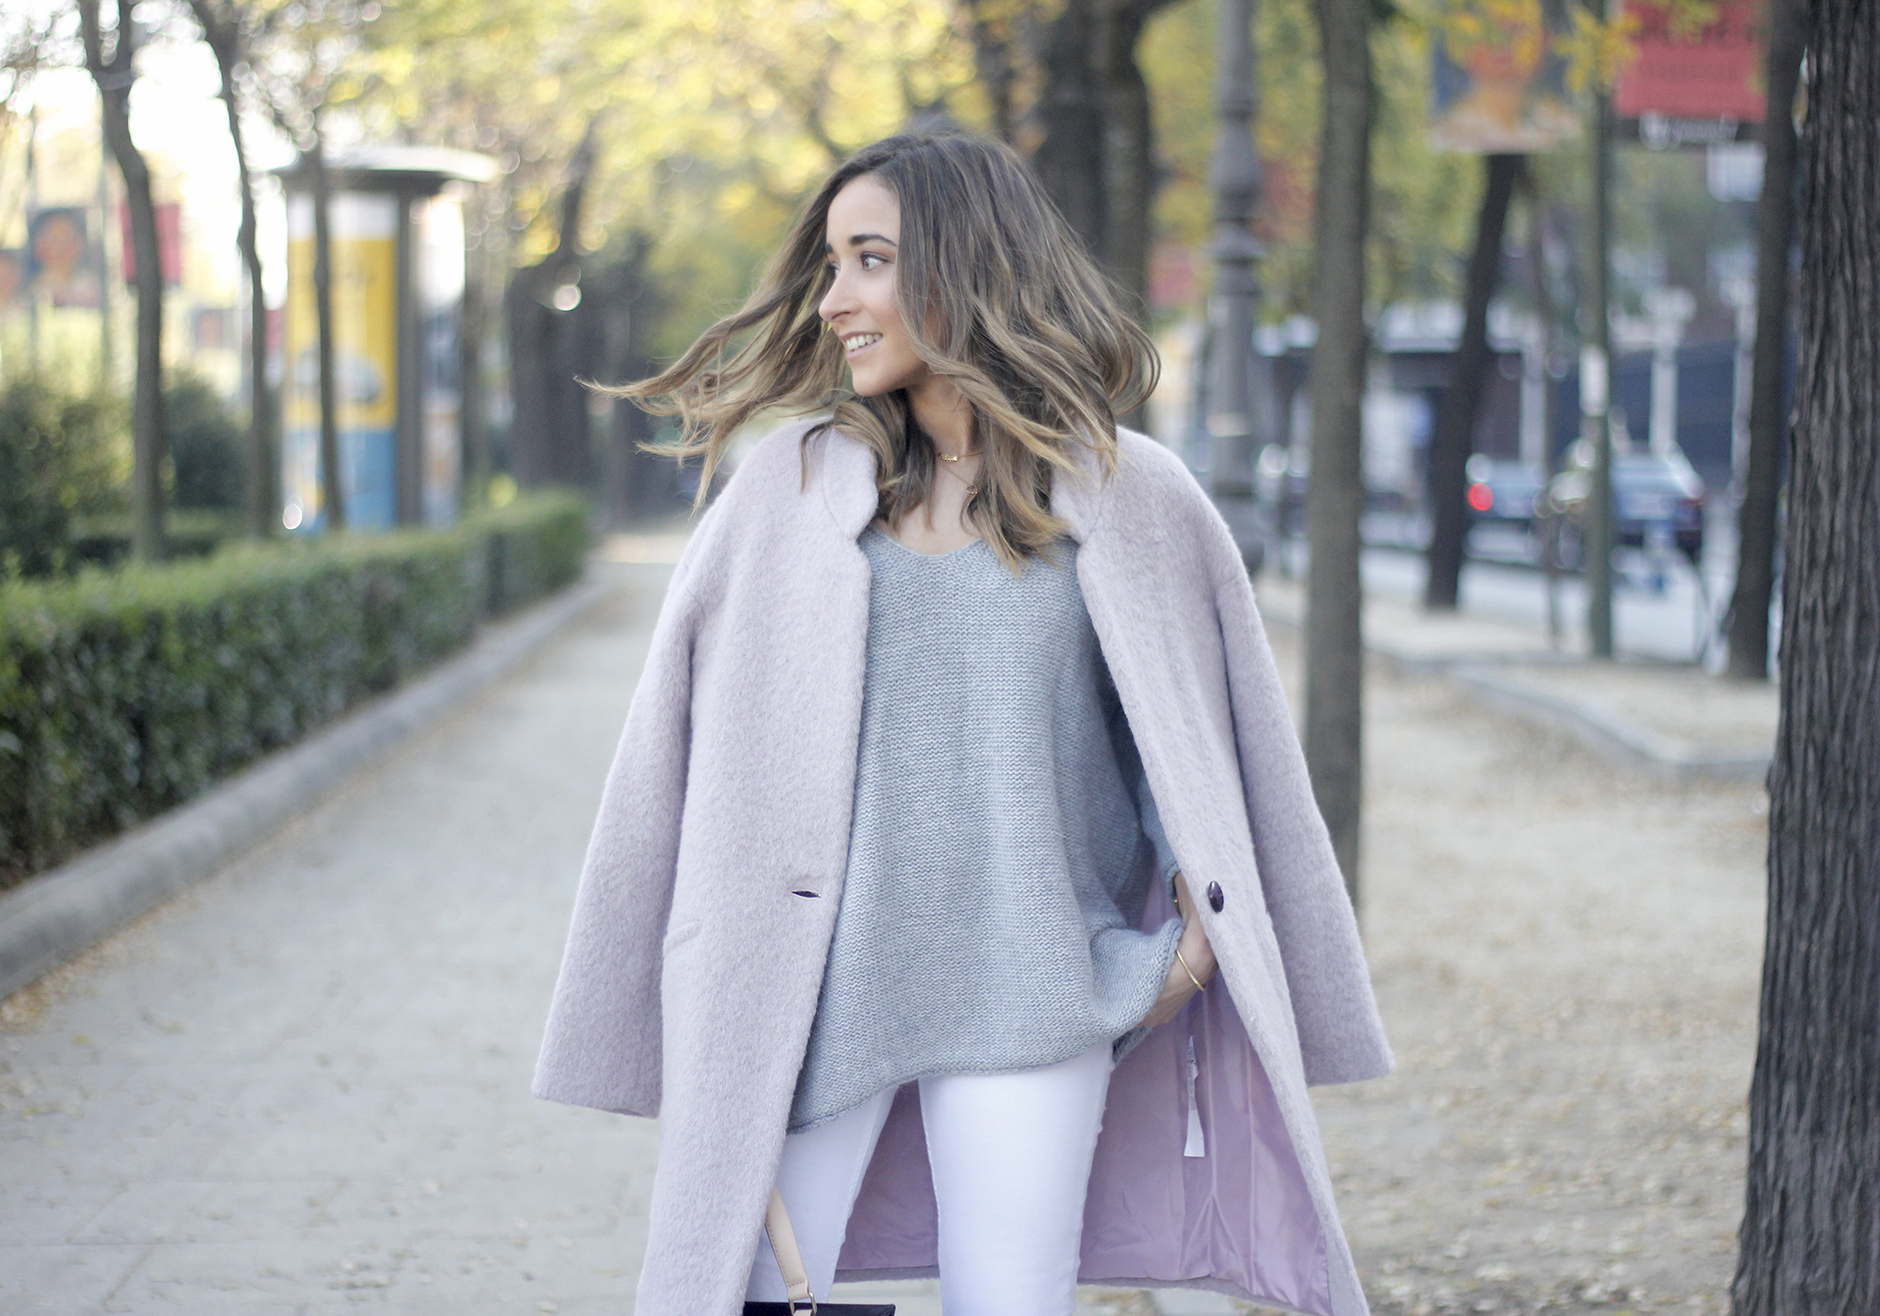 Tintoretto Pink Coat white jeans grey sweater outfit17